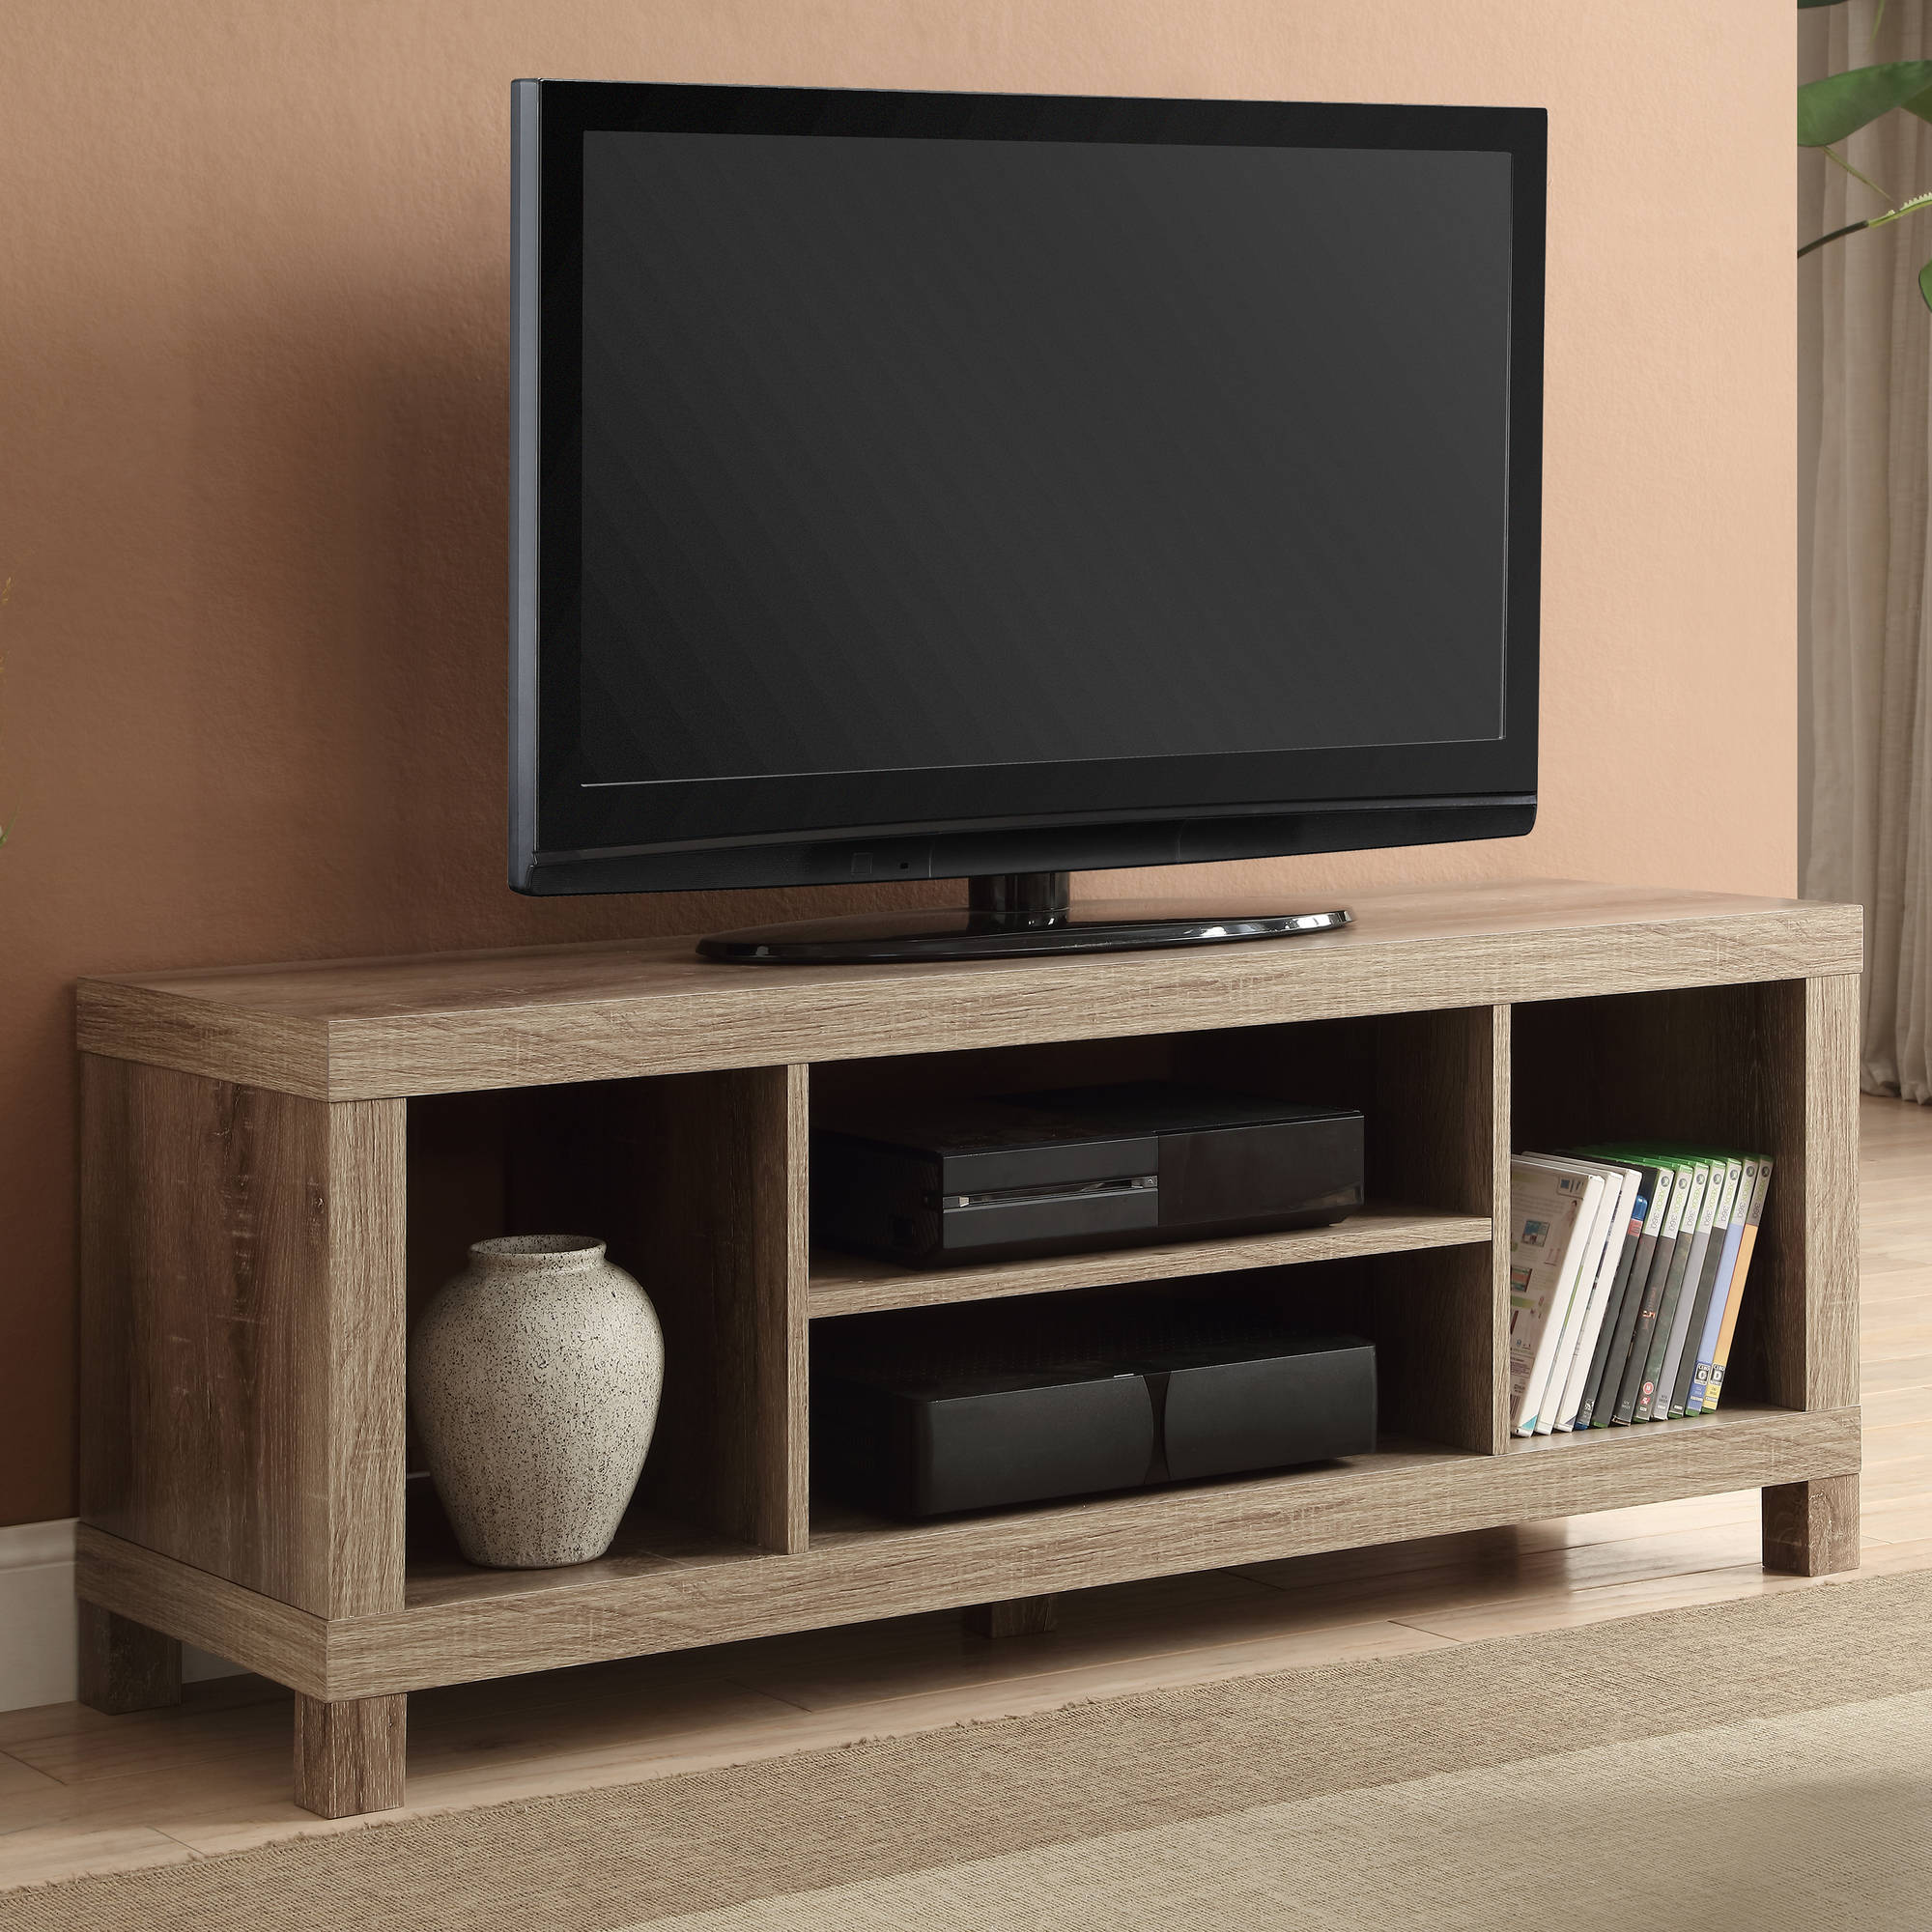 Black Oak TV Stand for TVs up to 42""